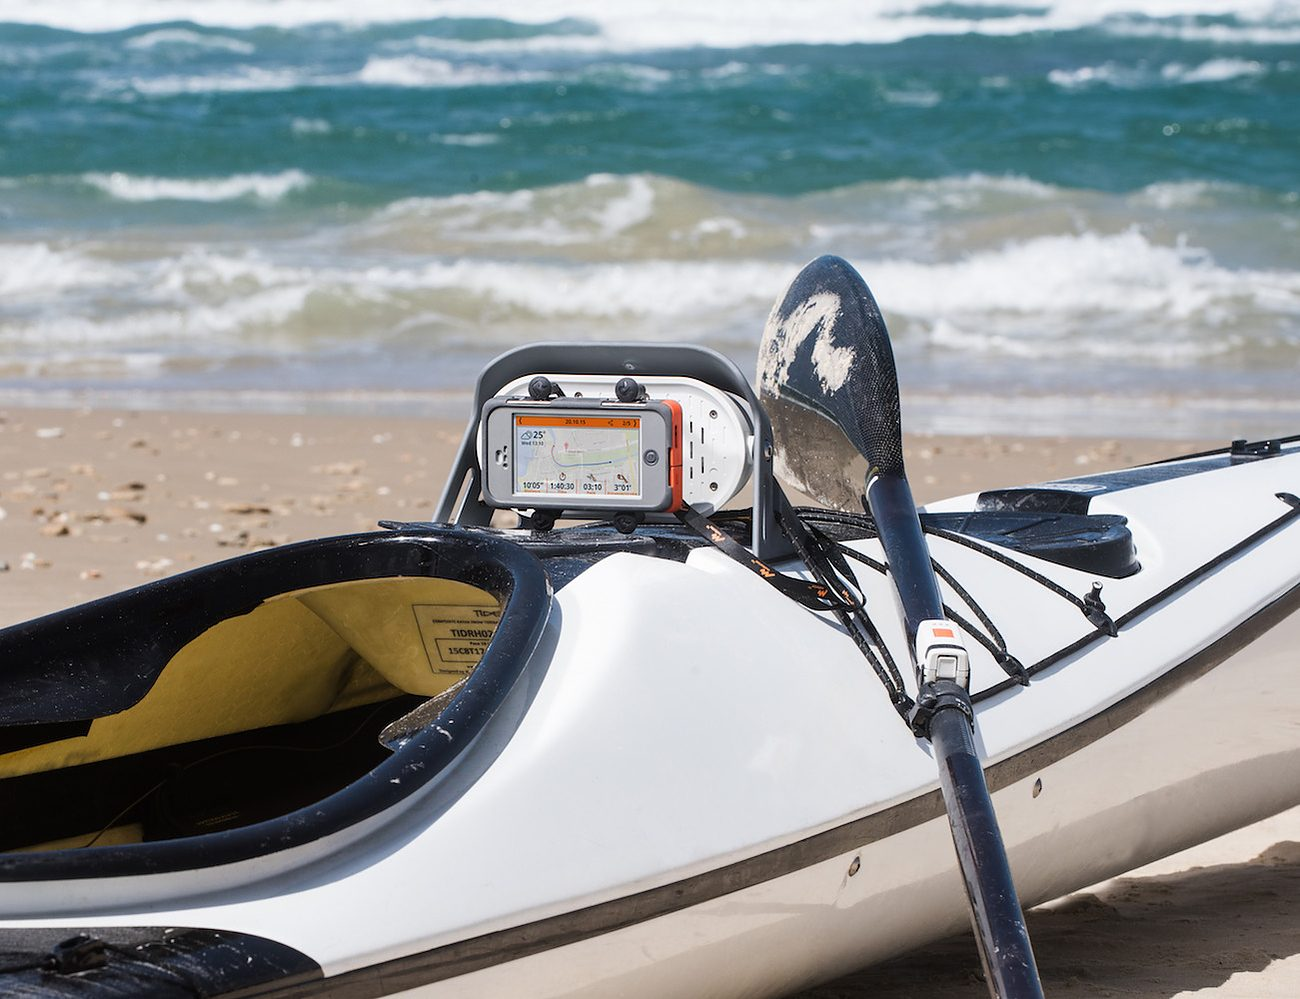 Motionize+Paddle+%26%238211%3B+Sports+Tracker+For+Paddlers